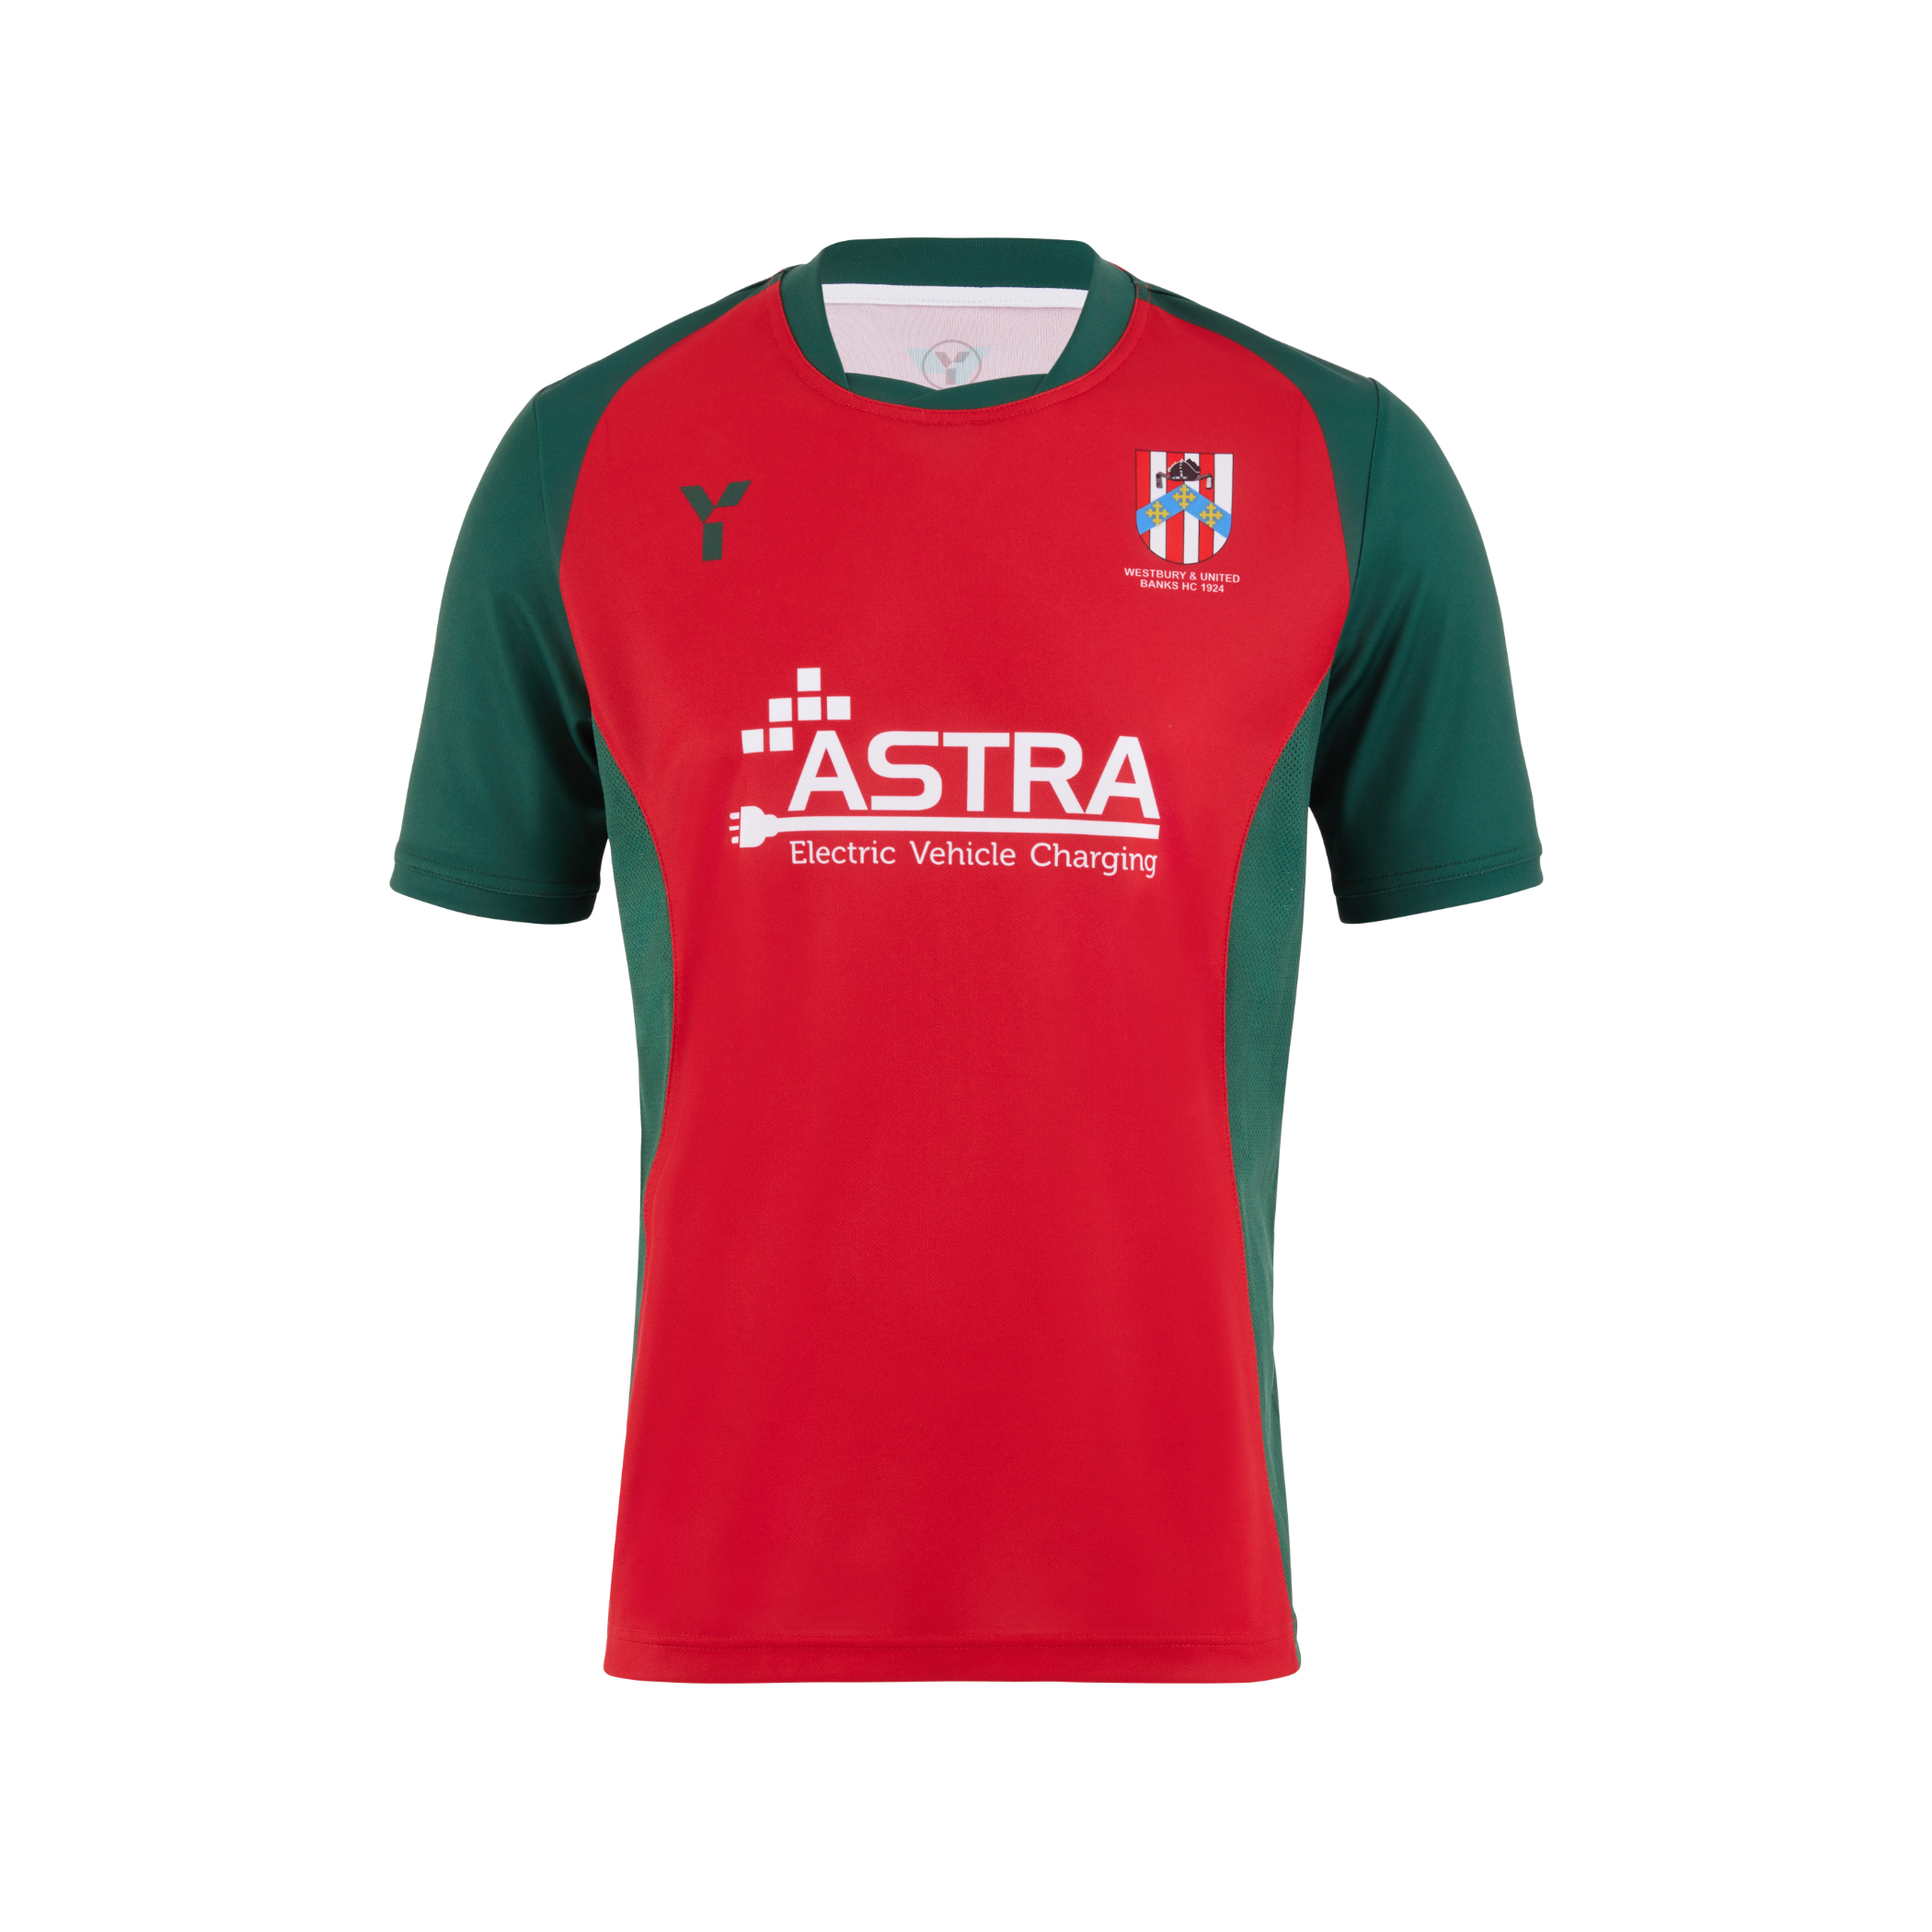 New home playing shirt with Astra EV branding